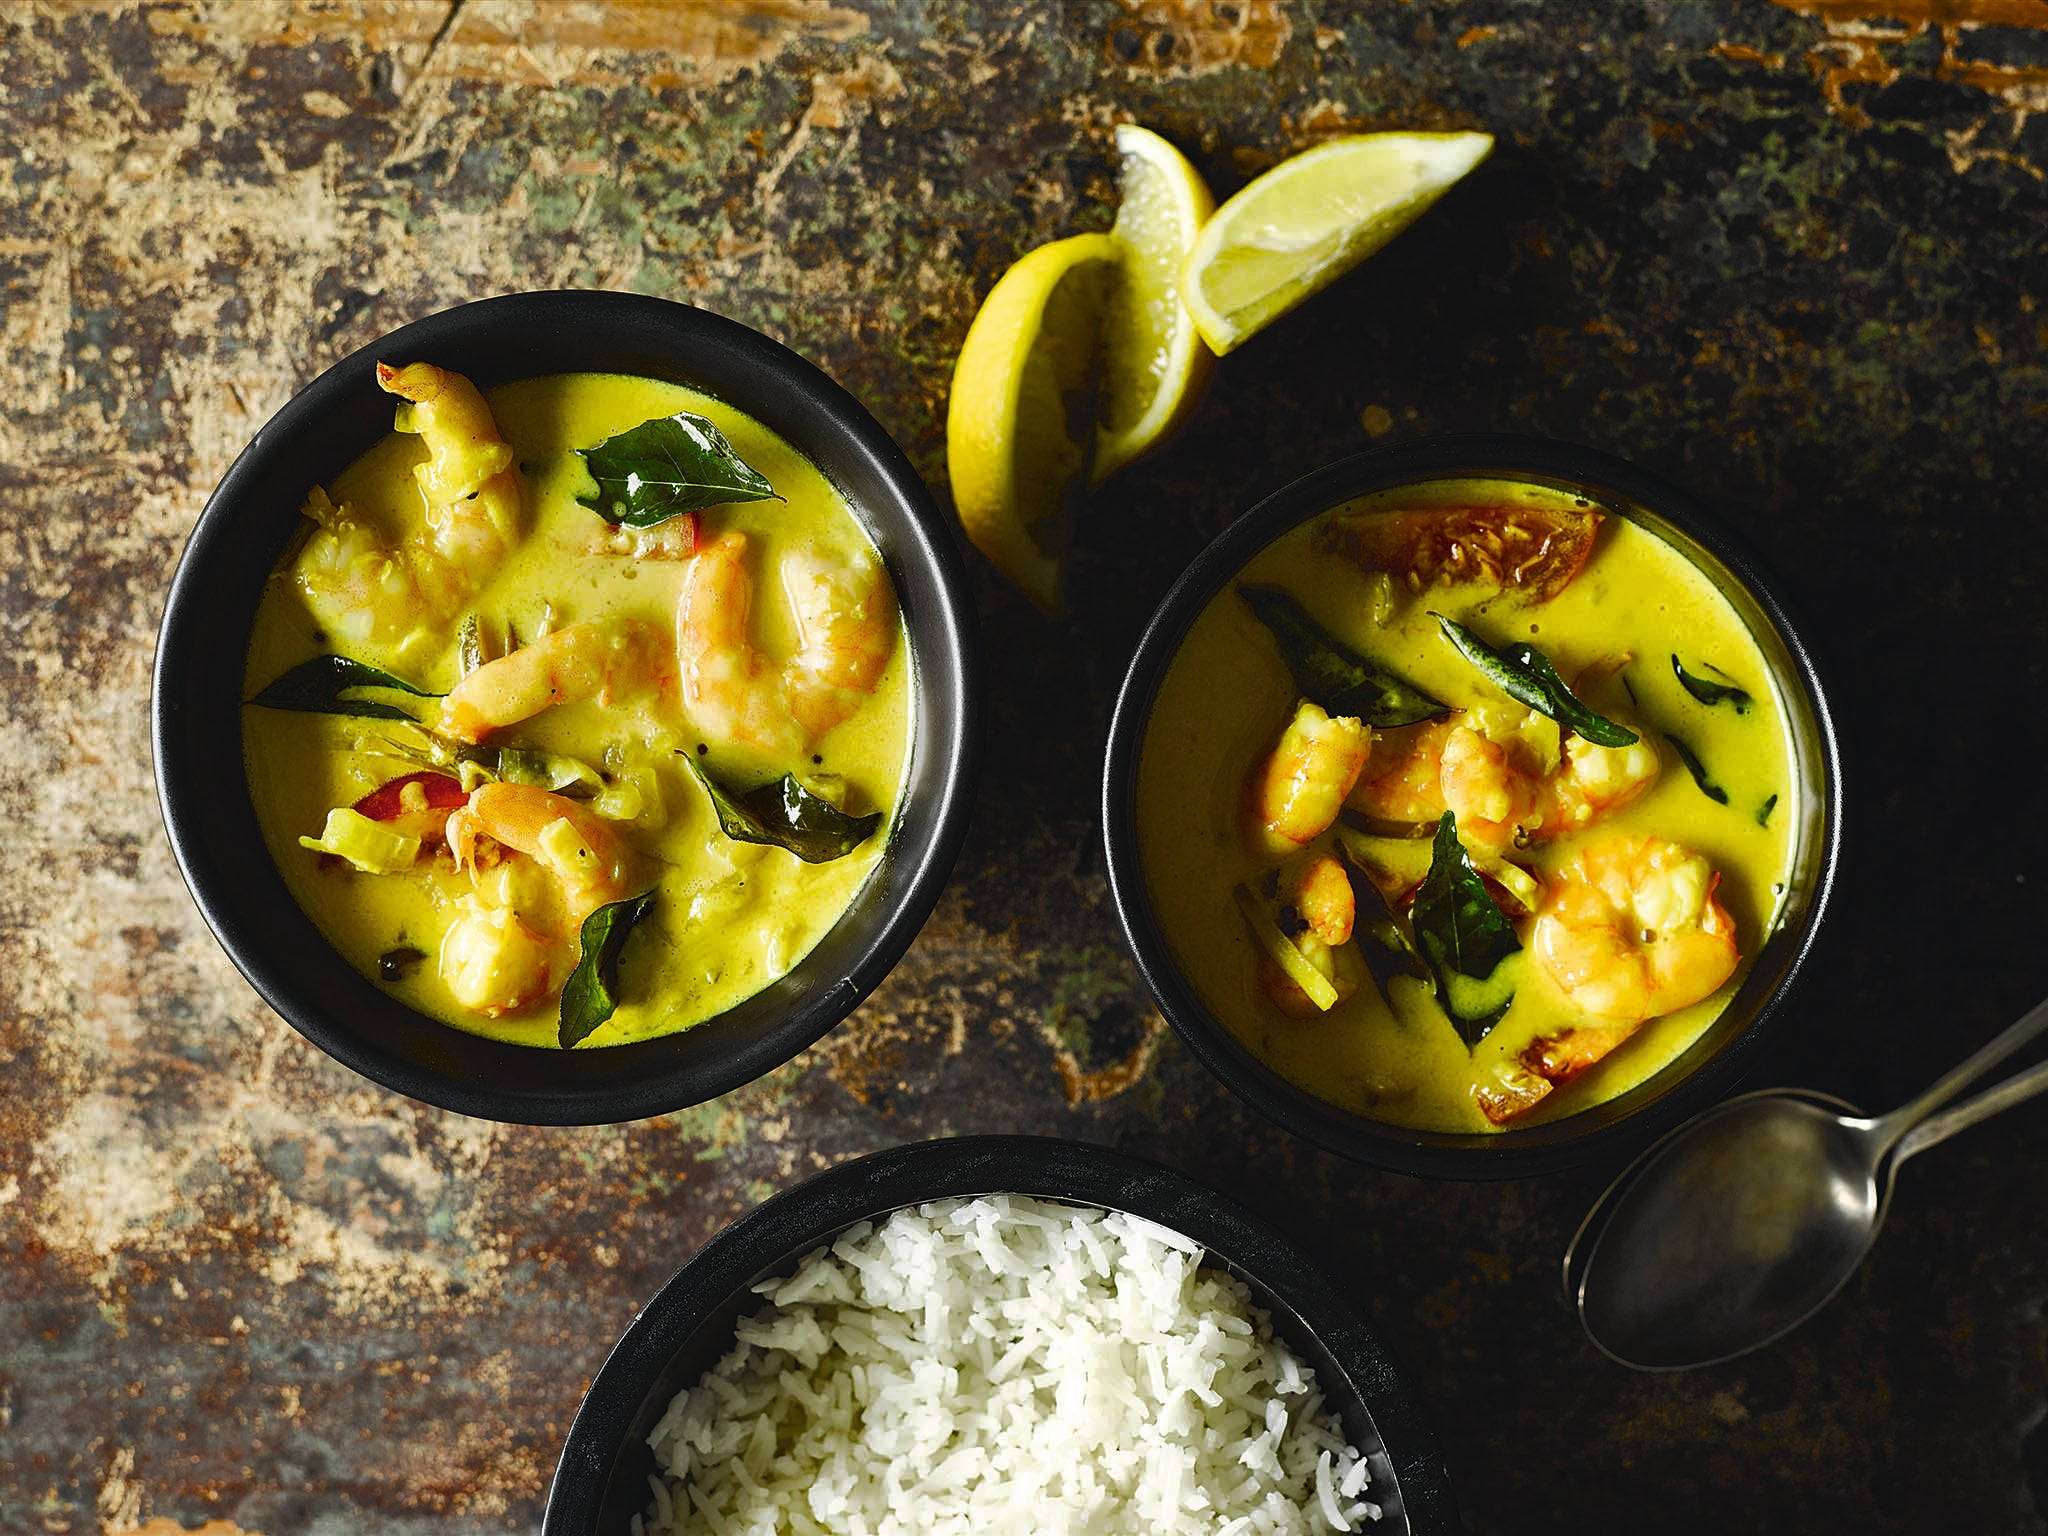 'Dishoom' cookbook recipes: From okra fries to prawn moilee 1